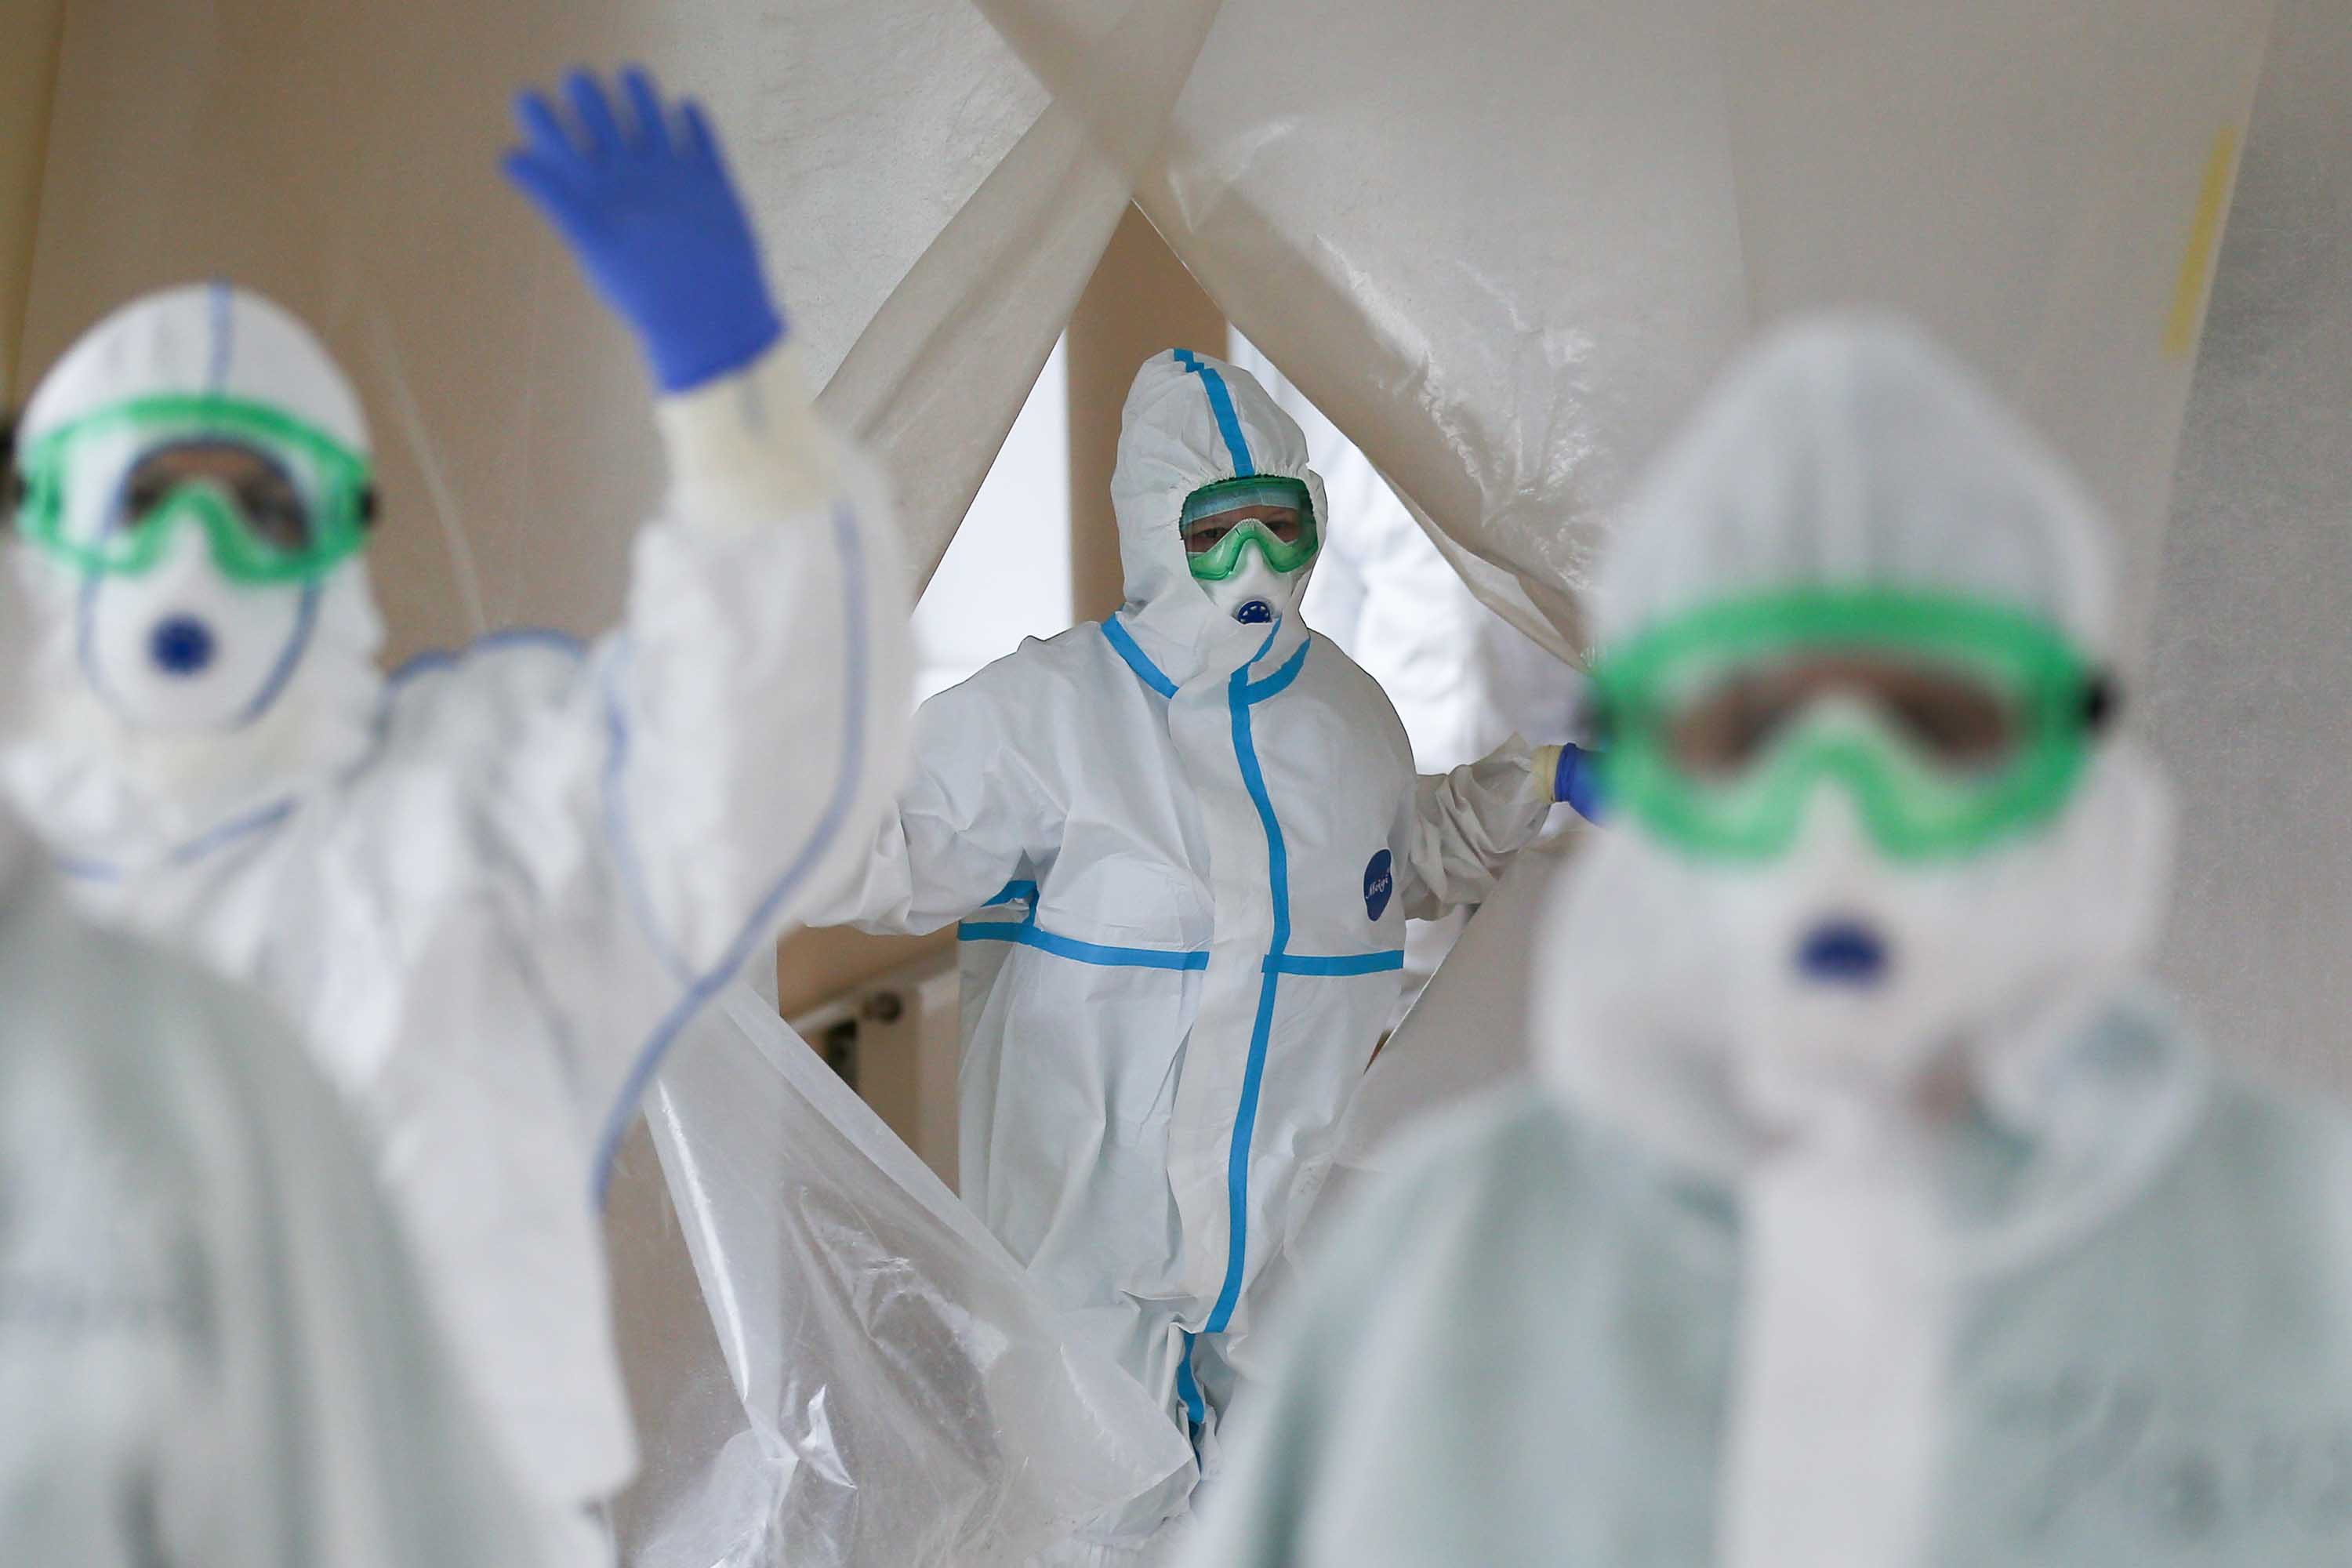 Medical workers are seen at a hospital that treats Covid-19 patients in Khimki, Russia, on May 12.